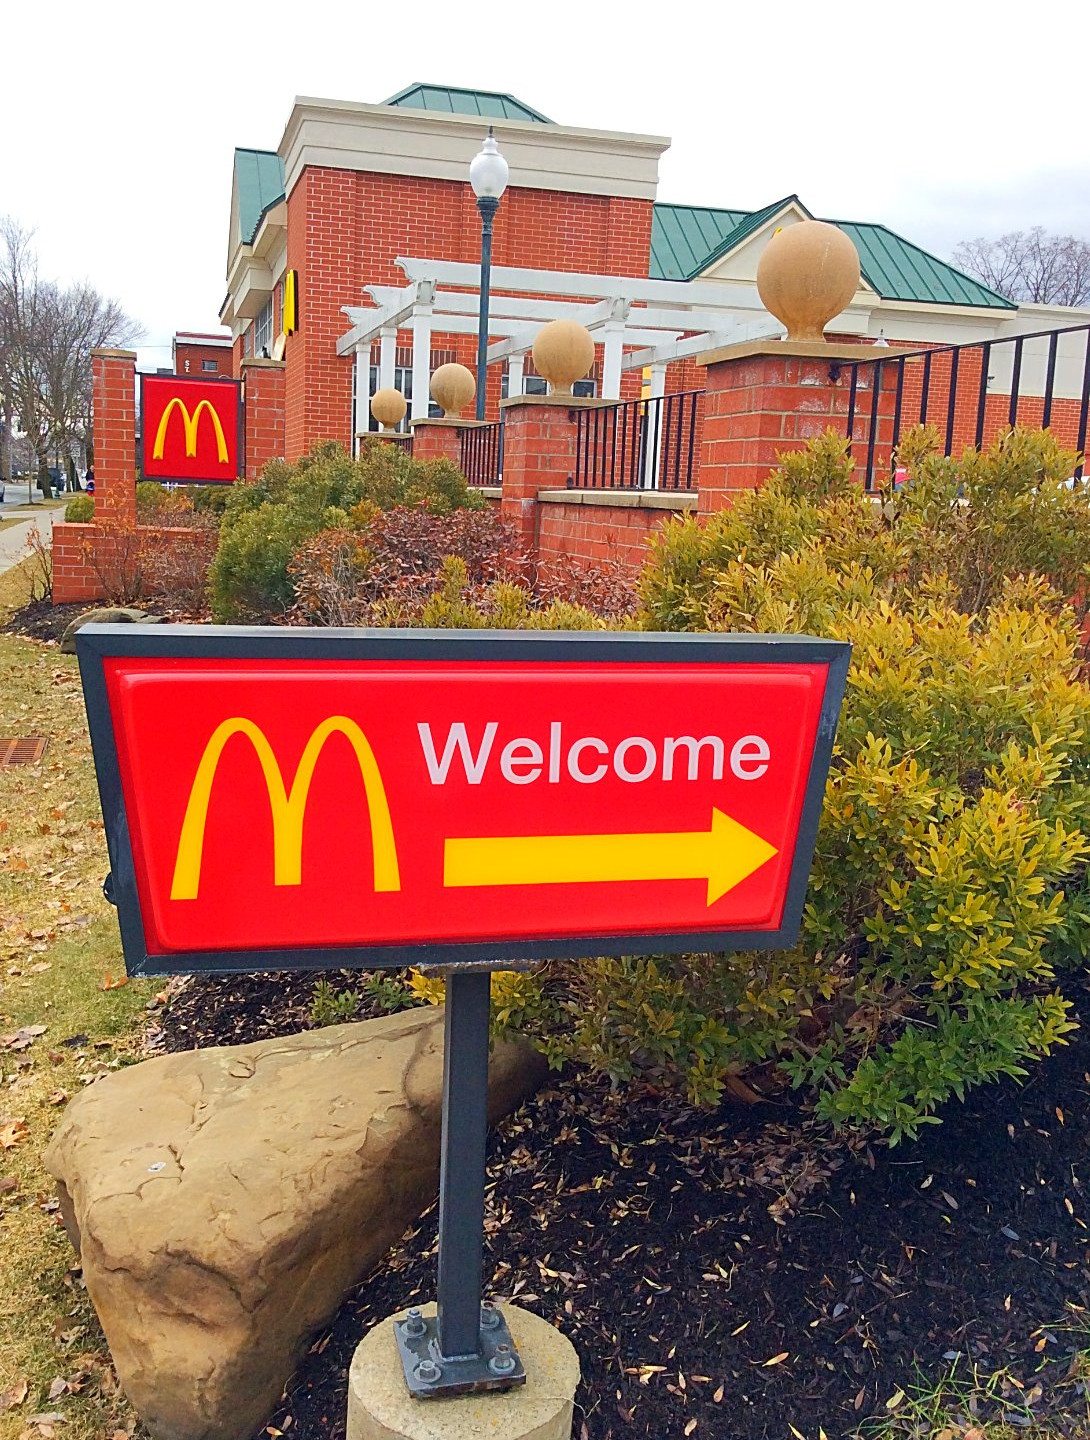 Welcome to McDonald's!